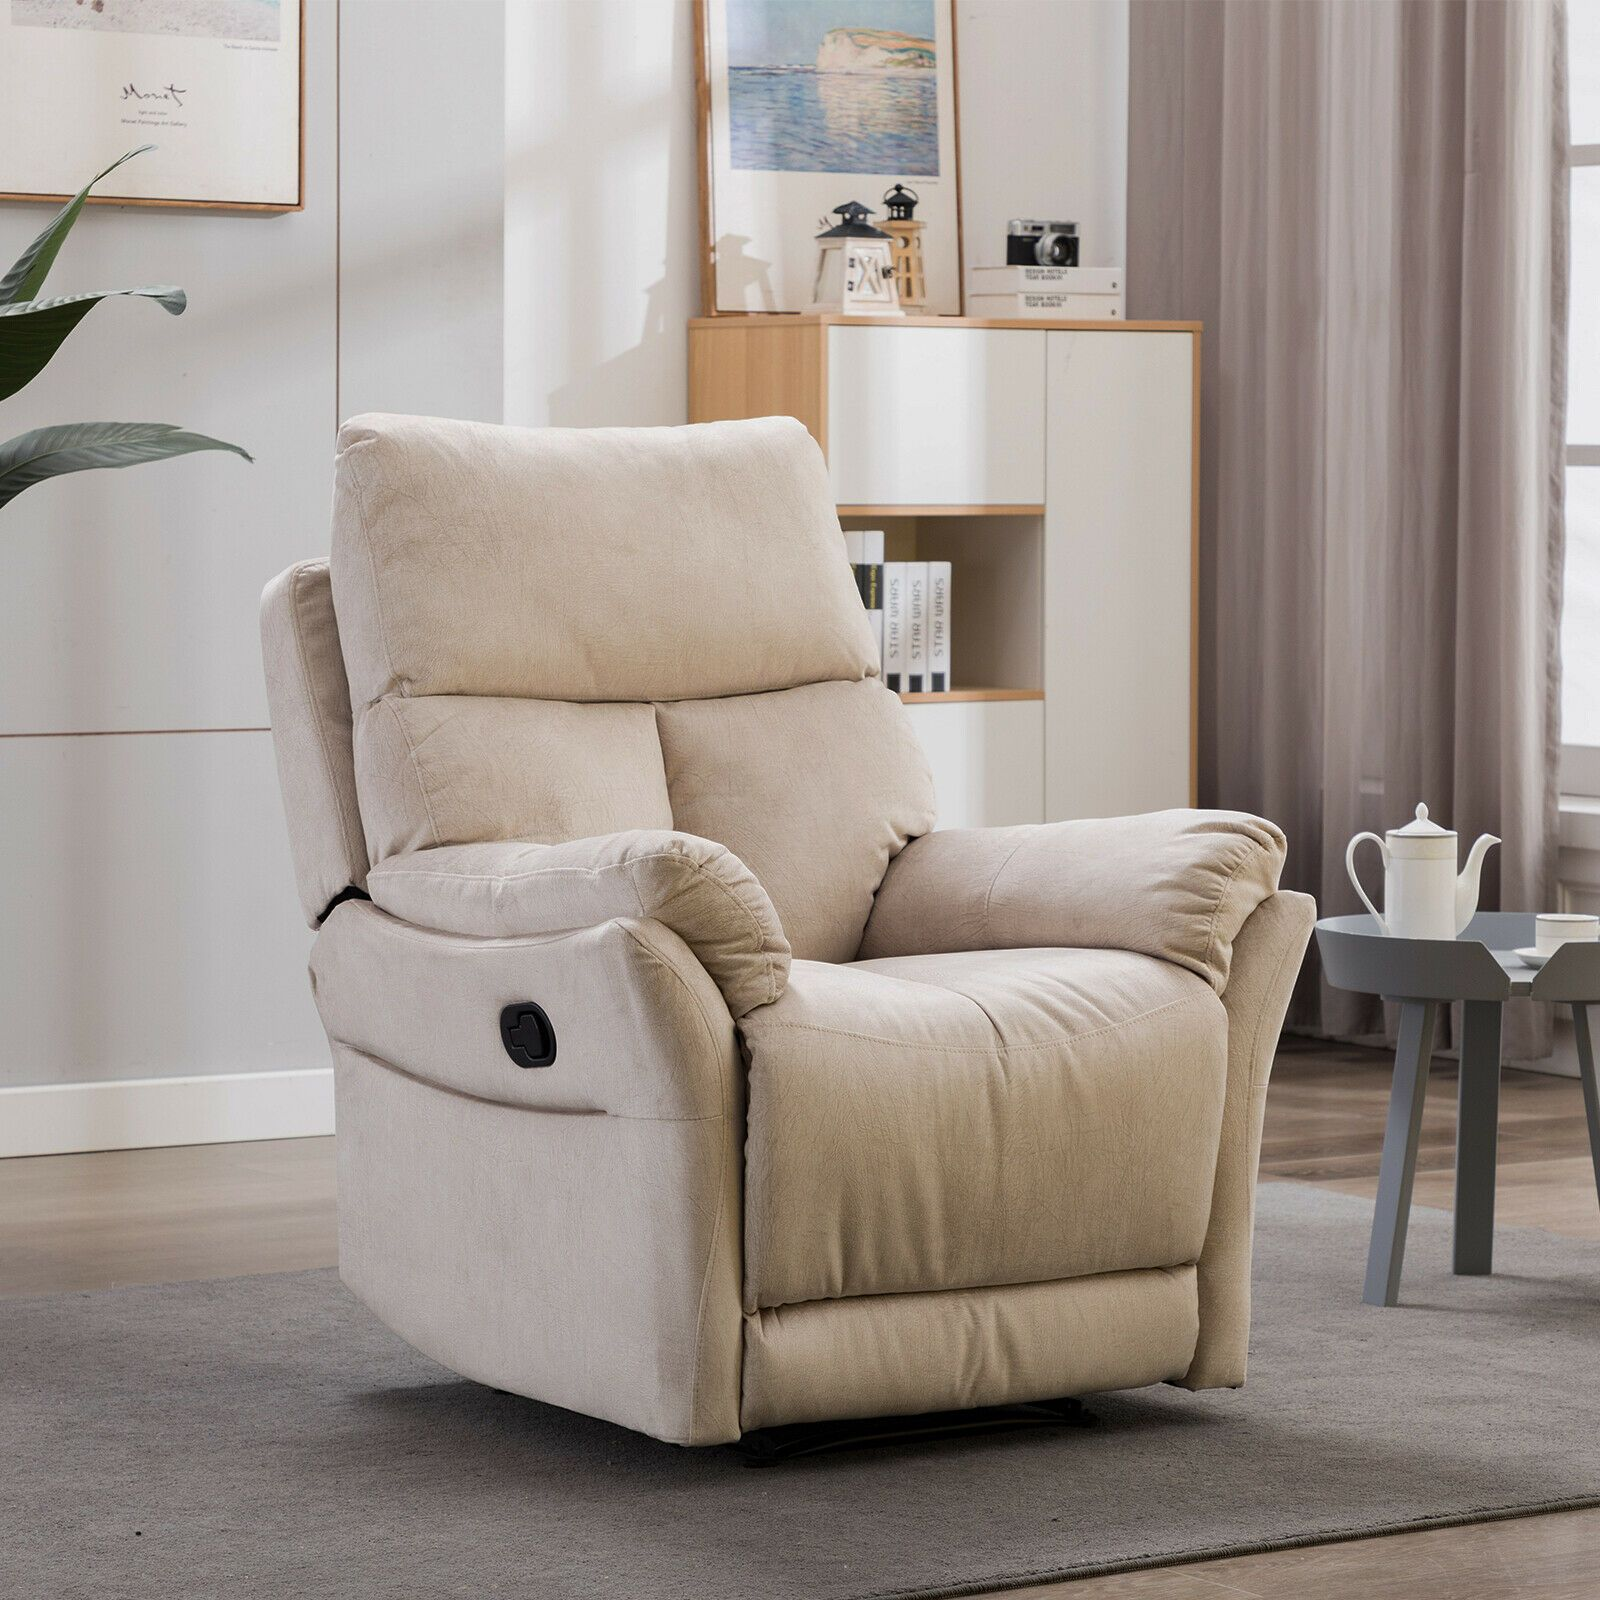 Manual Recliner Chair Reclining Lounge Sofa with